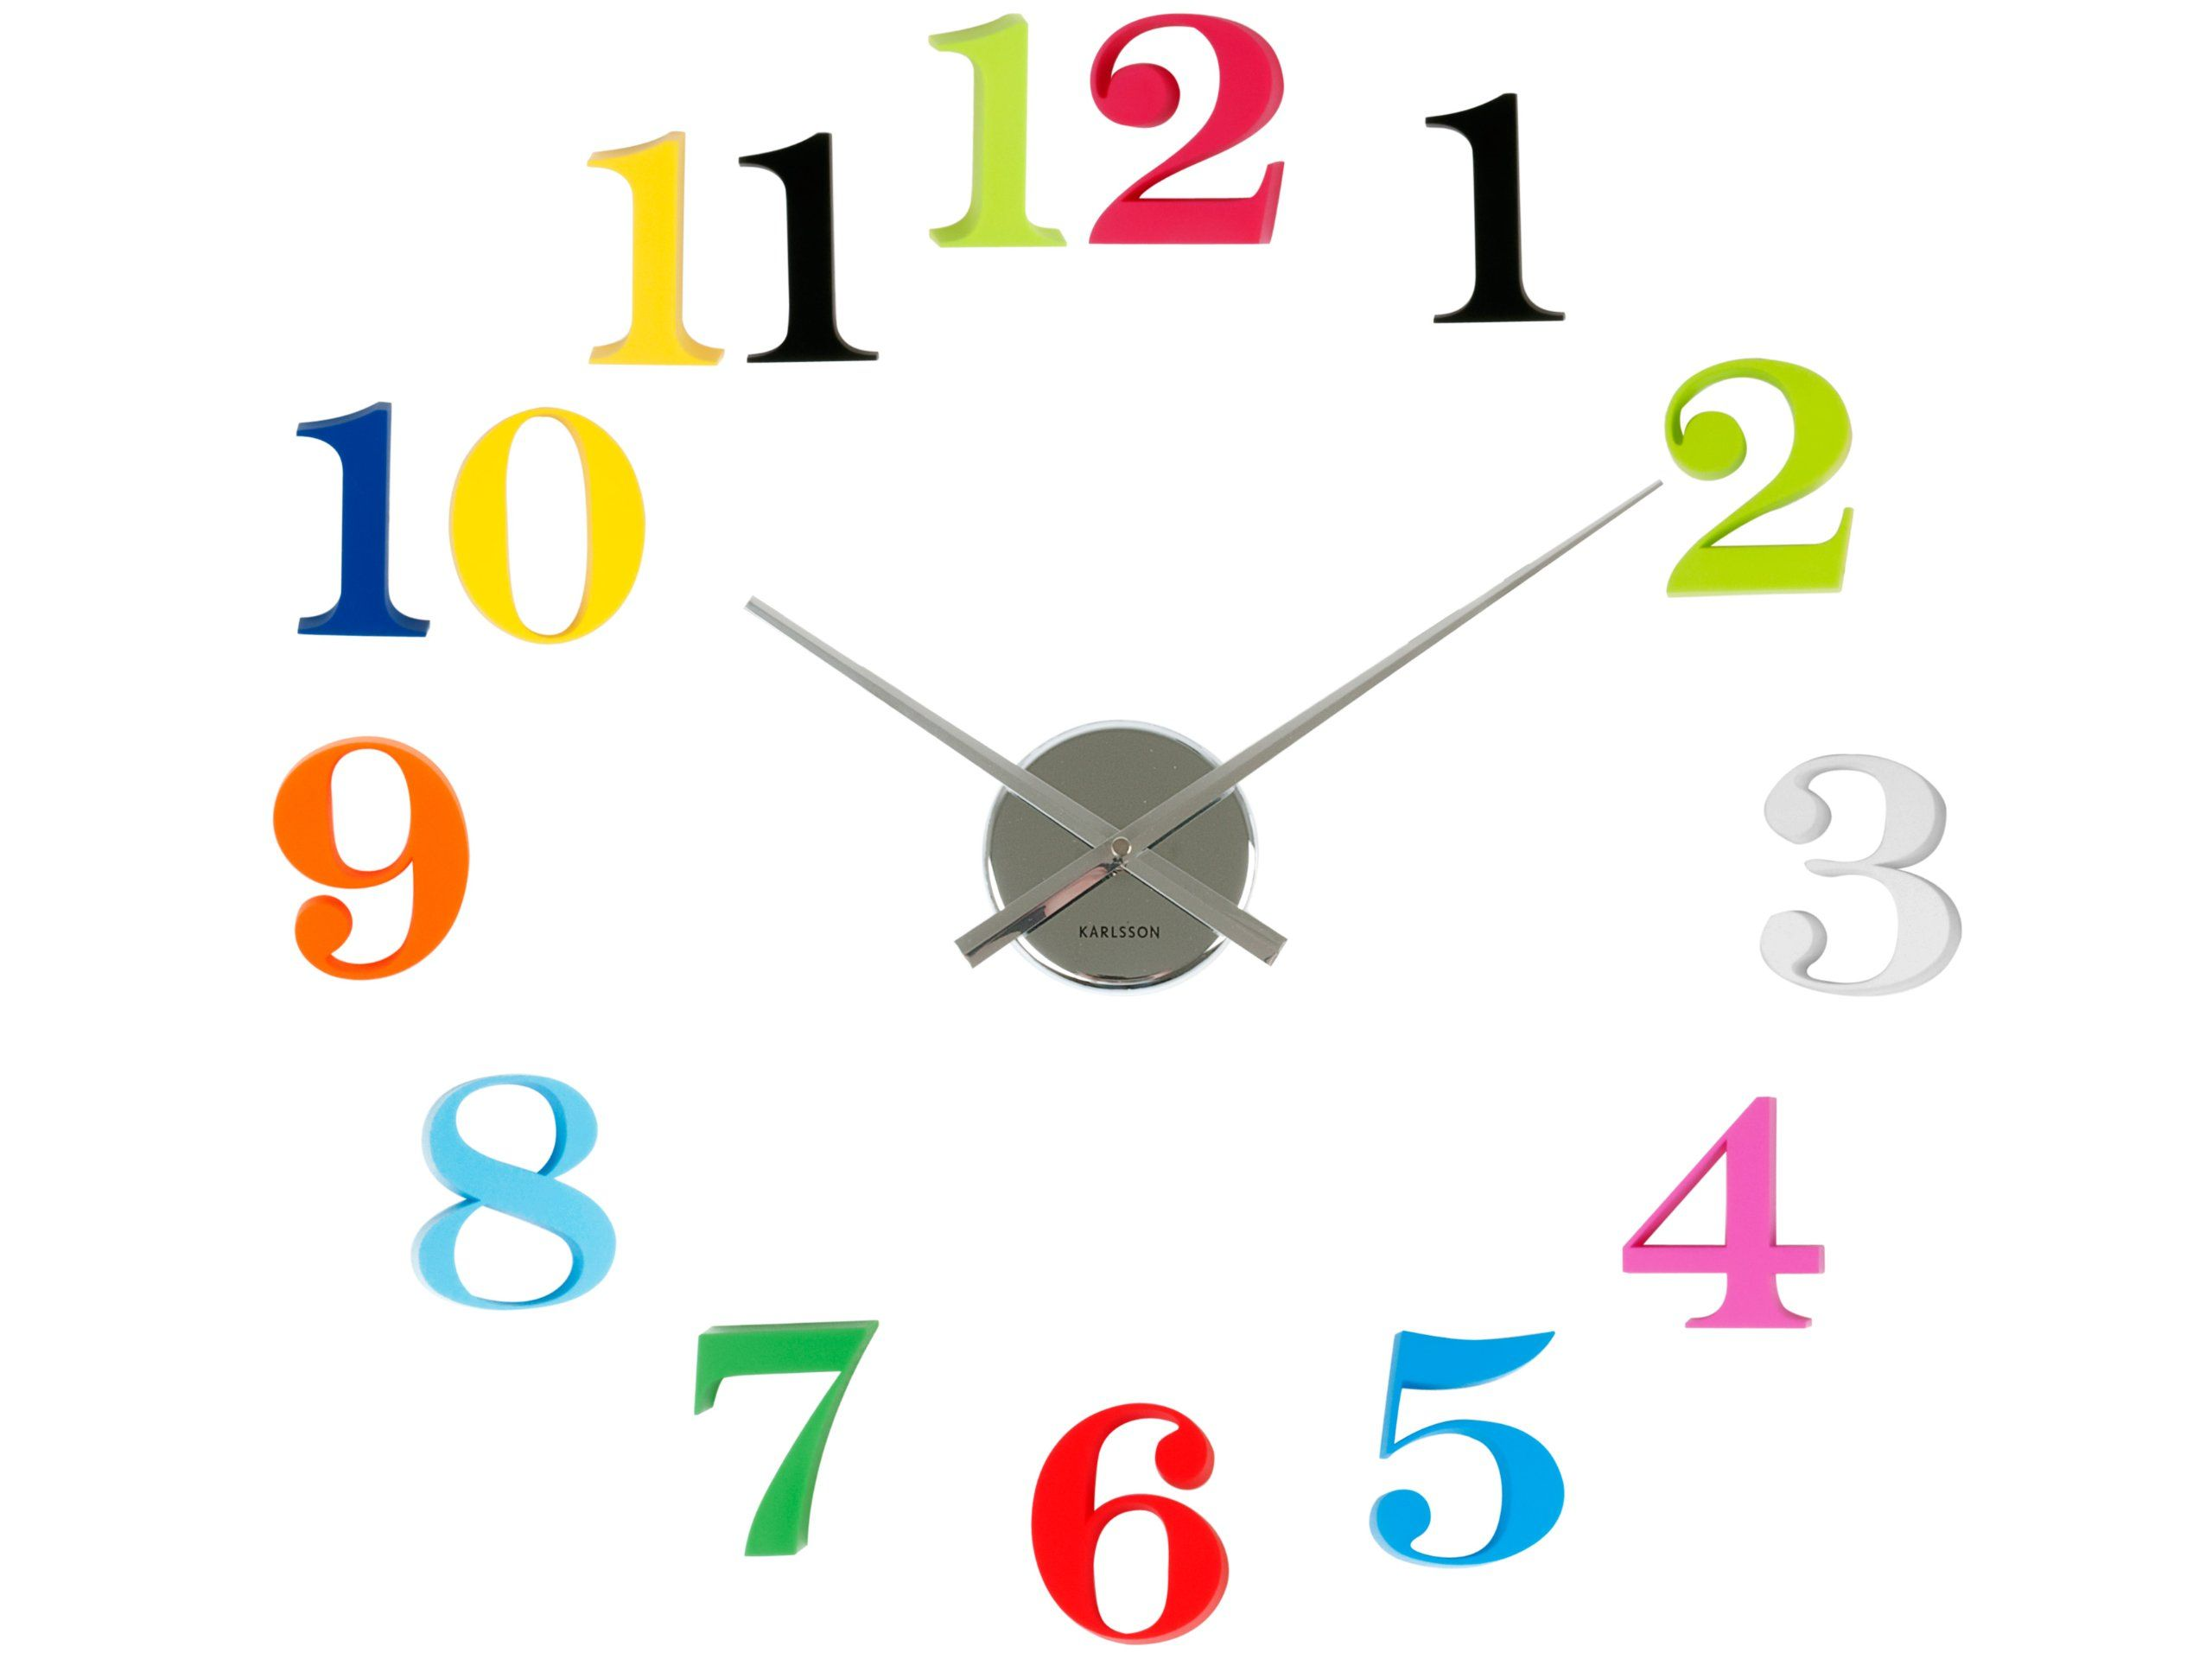 Karlsson wall clock diy grand numbers colours plastic amazon karlsson wall clock diy grand numbers colours plastic amazon amipublicfo Images